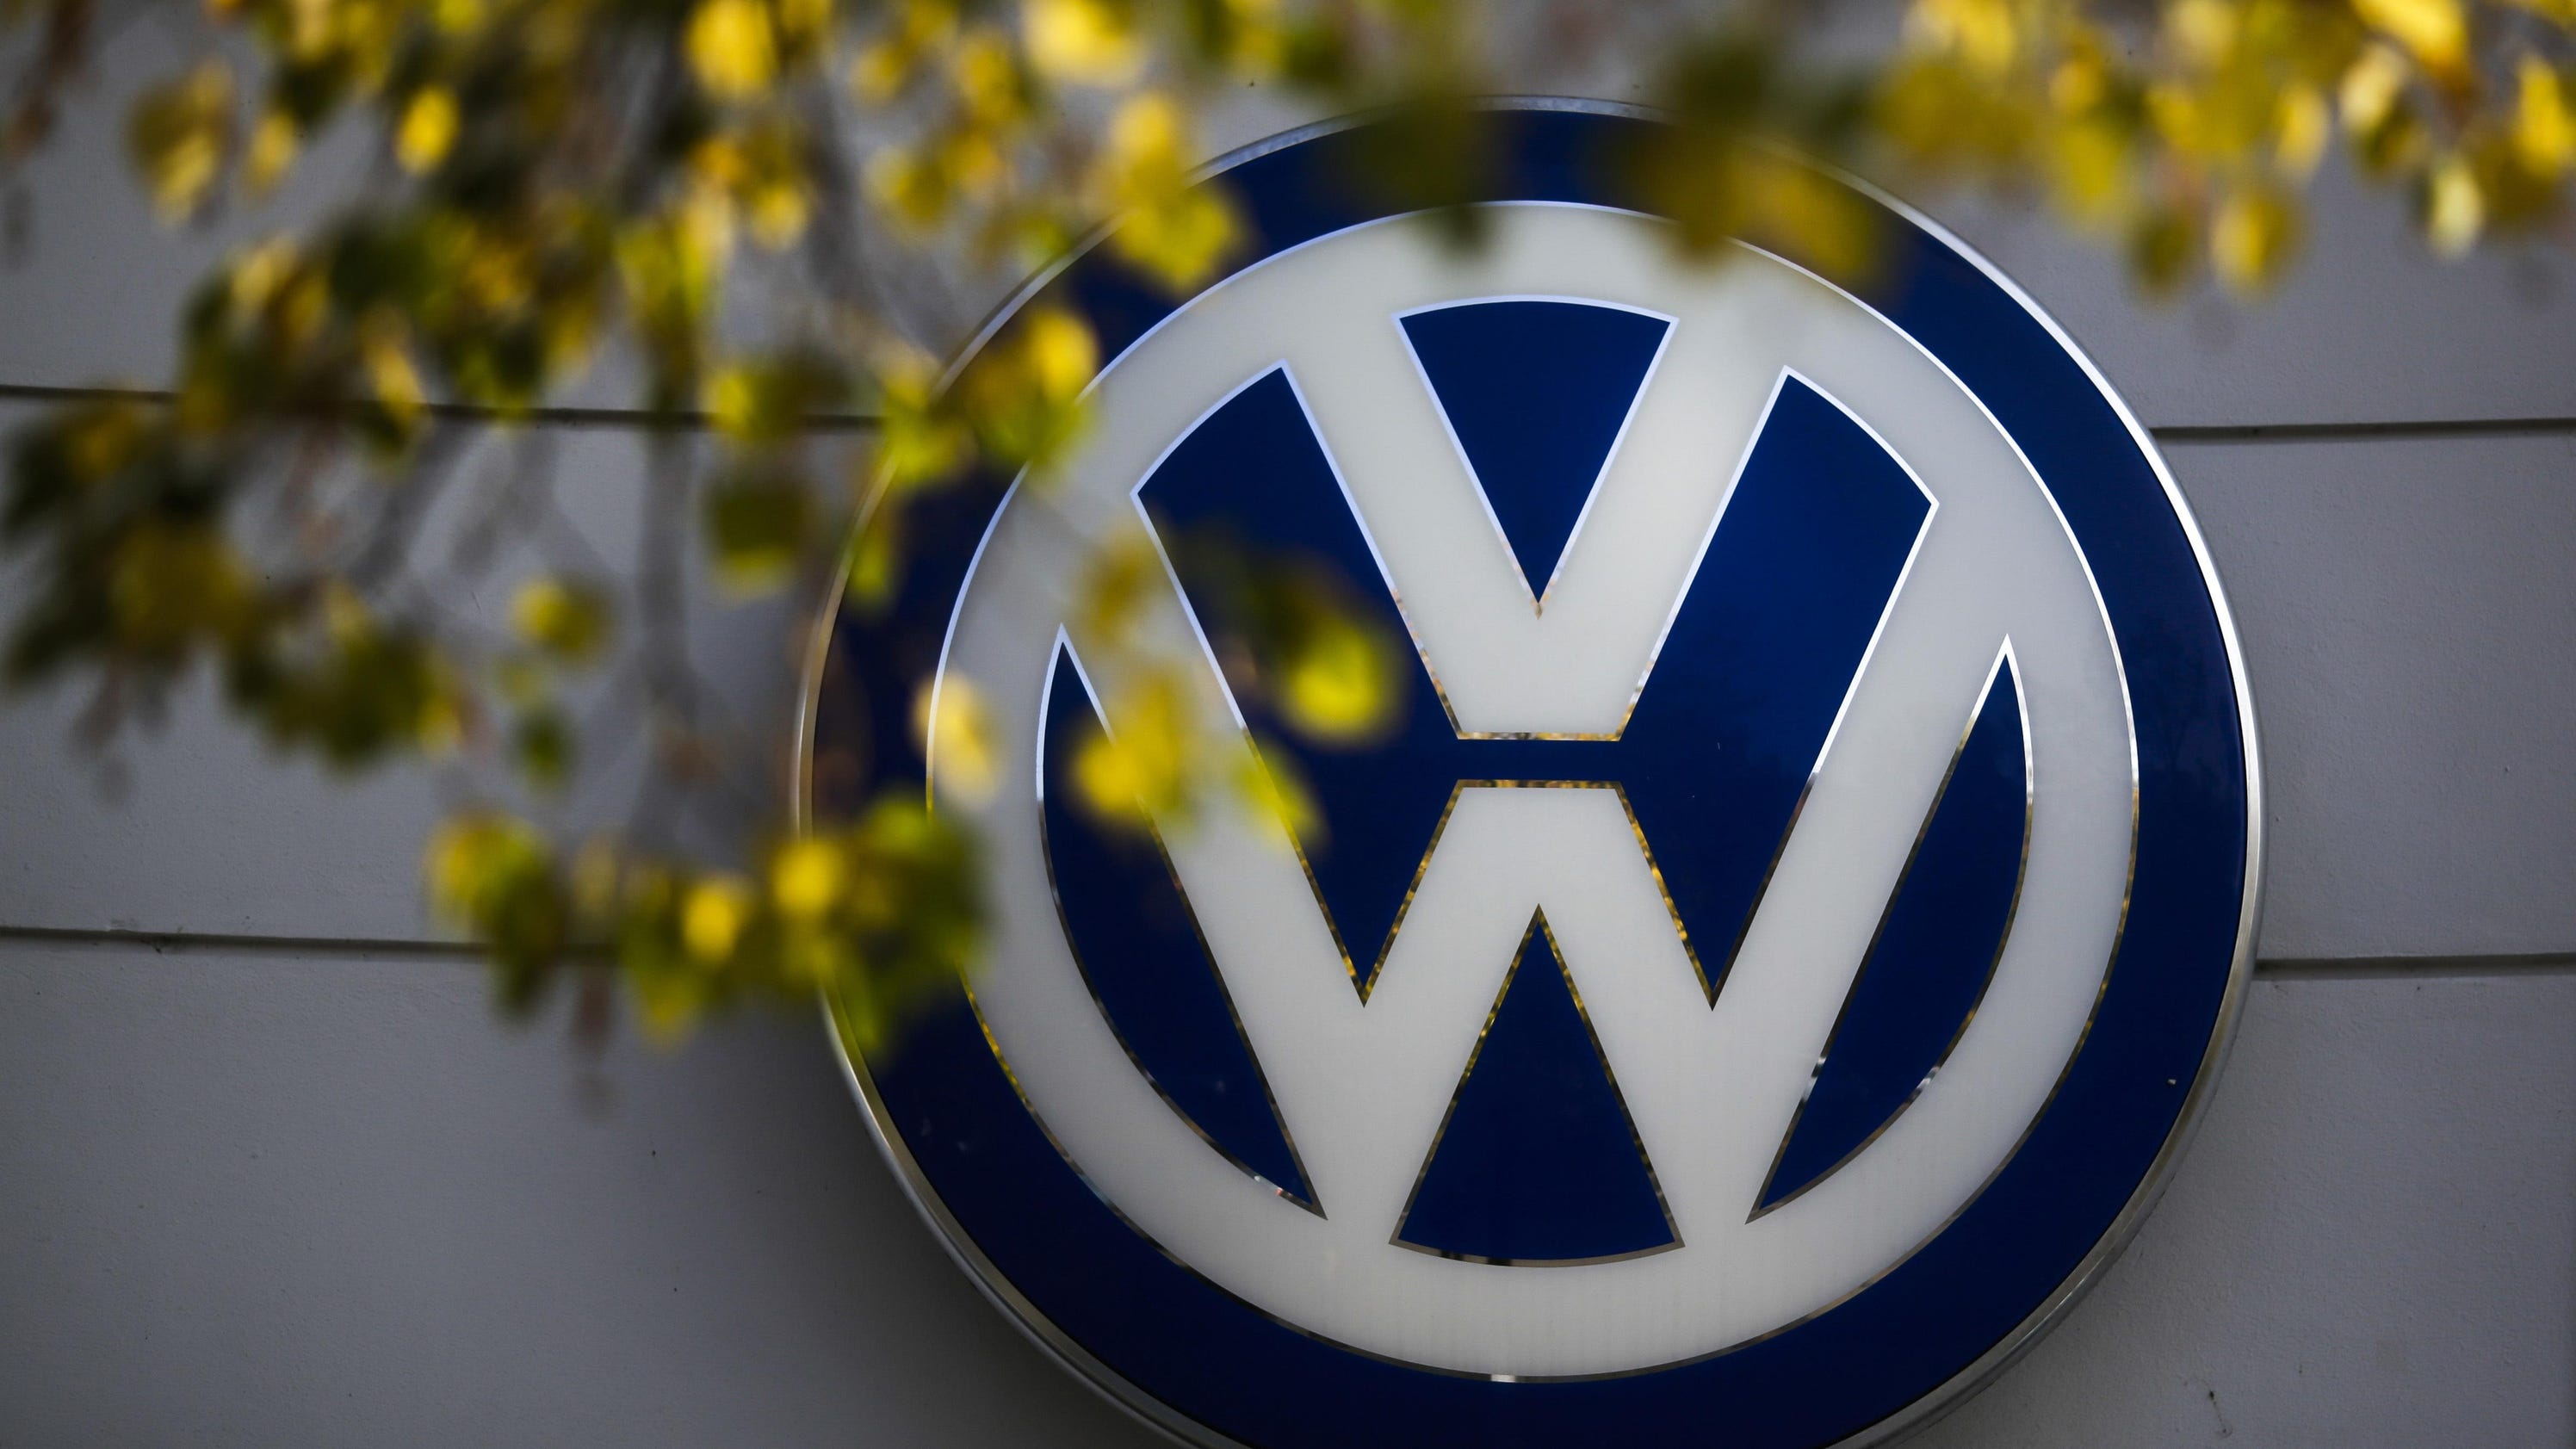 Dc5m United States Criminal In English Created At 2016 10 19 0325 424 X 253 Png 19kb Open Circuit And Short Test On Transformer Washington A Federal Judge Said Tuesday That He Is Inclined To Approve 147 Billion Settlement Between Volkswagen U S Regulators Over